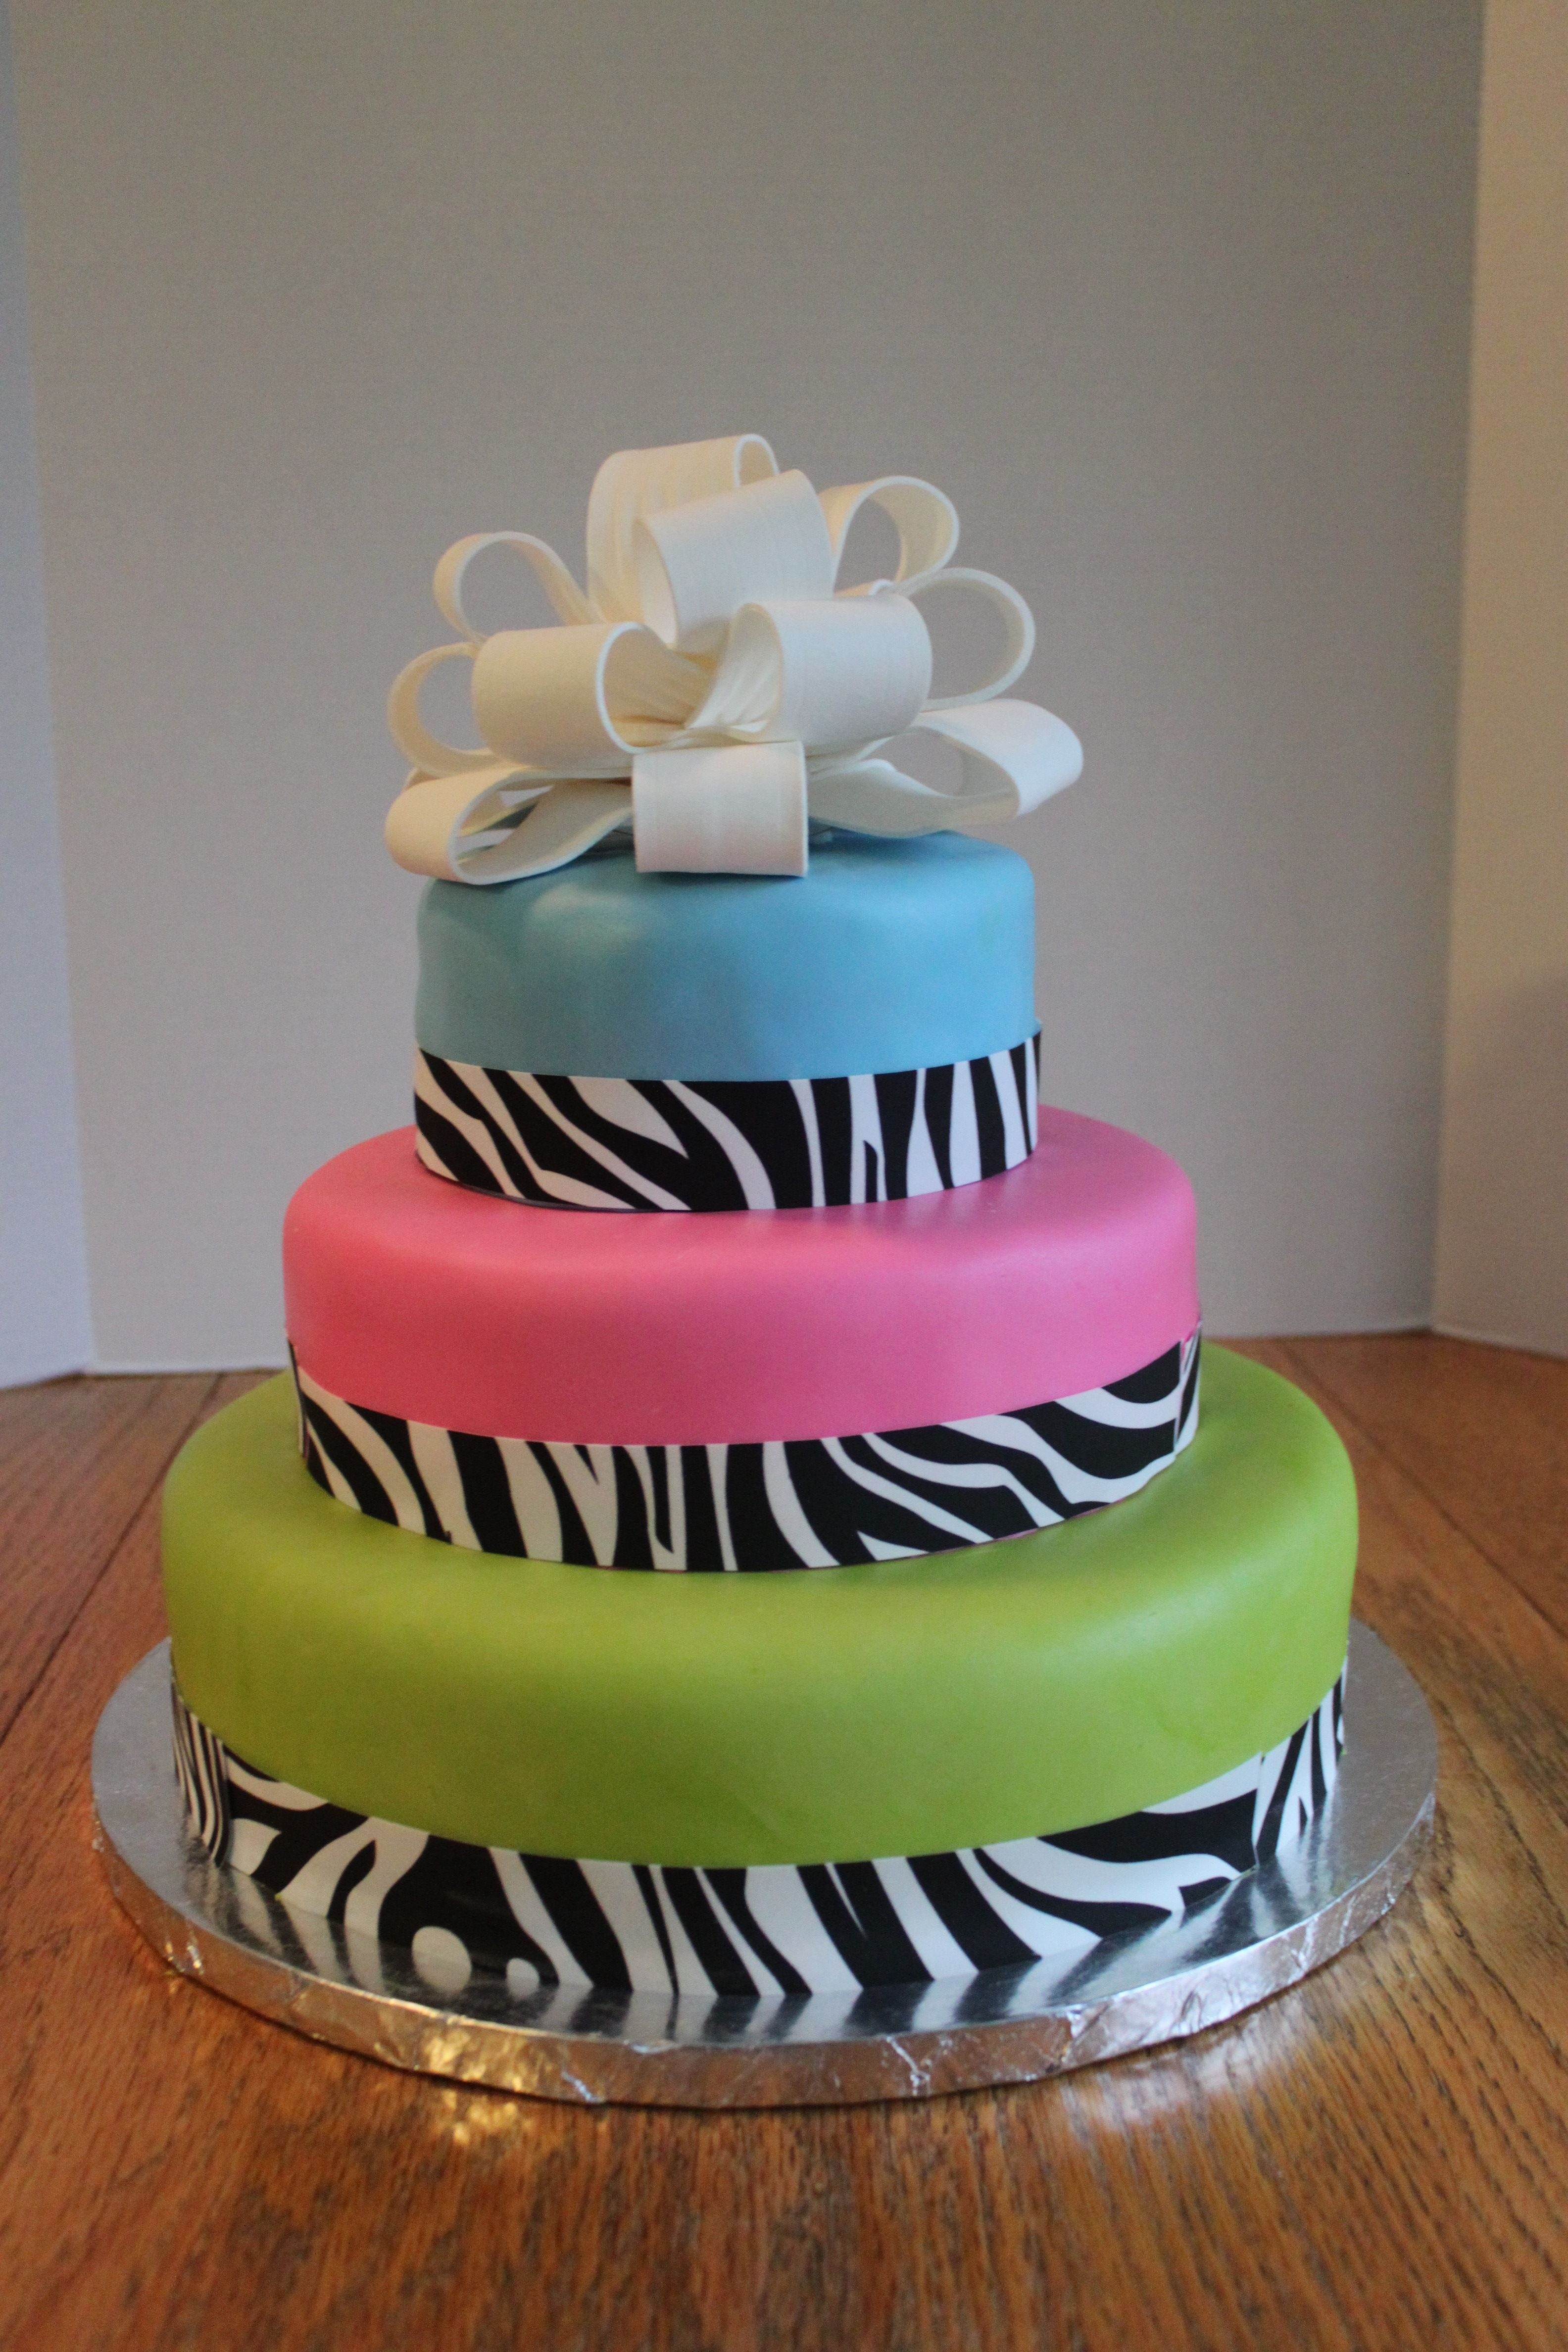 Birthday Cake Cool Ideas ~ Image Inspiration of Cake and ...